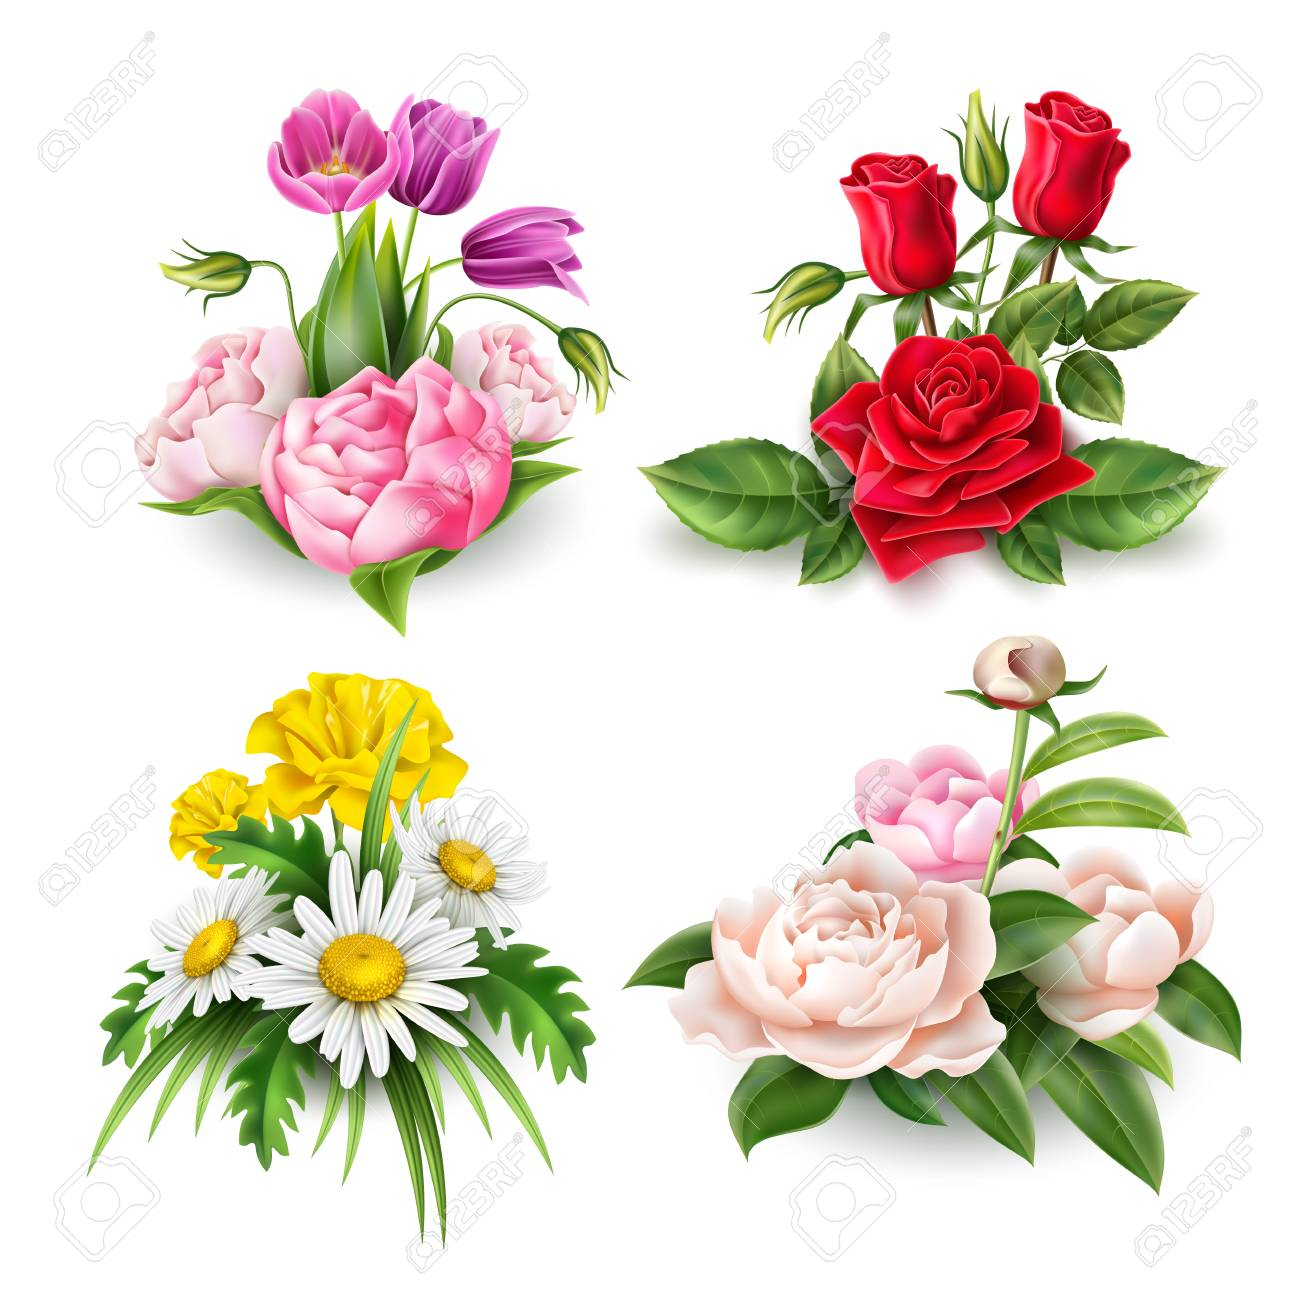 Realistic Rose Tulip Peony And Daisy Flowers Bouquet Set Elegant Royalty Free Cliparts Vectors And Stock Illustration Image 125914613